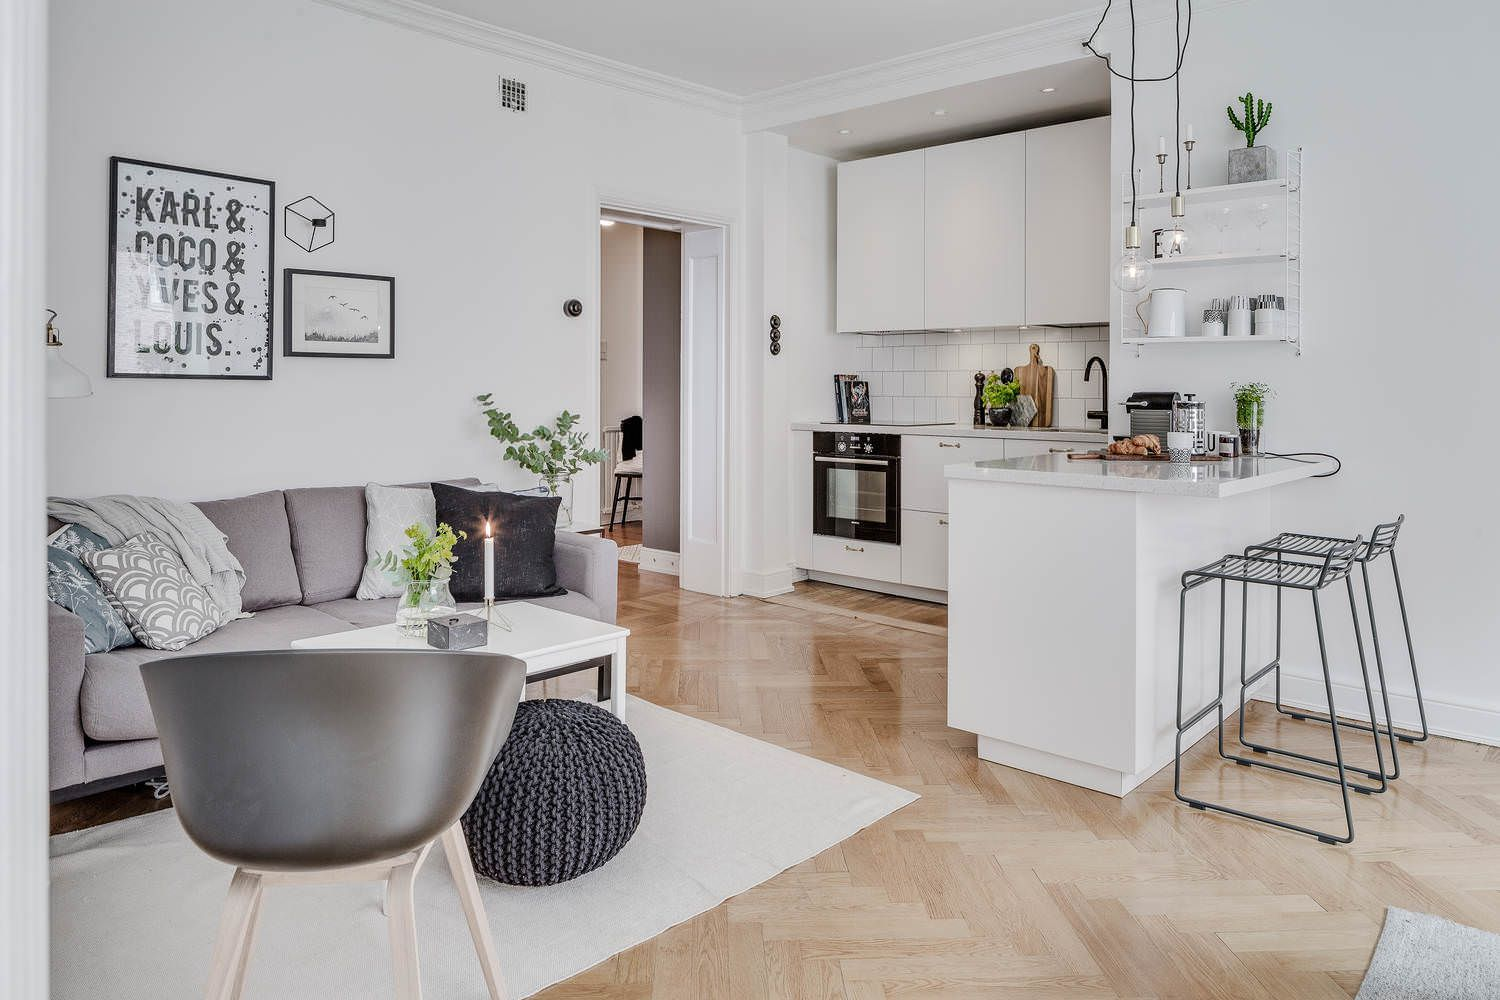 Kitchen in Living Room with Bar Counter. Original Interior Ideas. White color theme with the diluting laminate